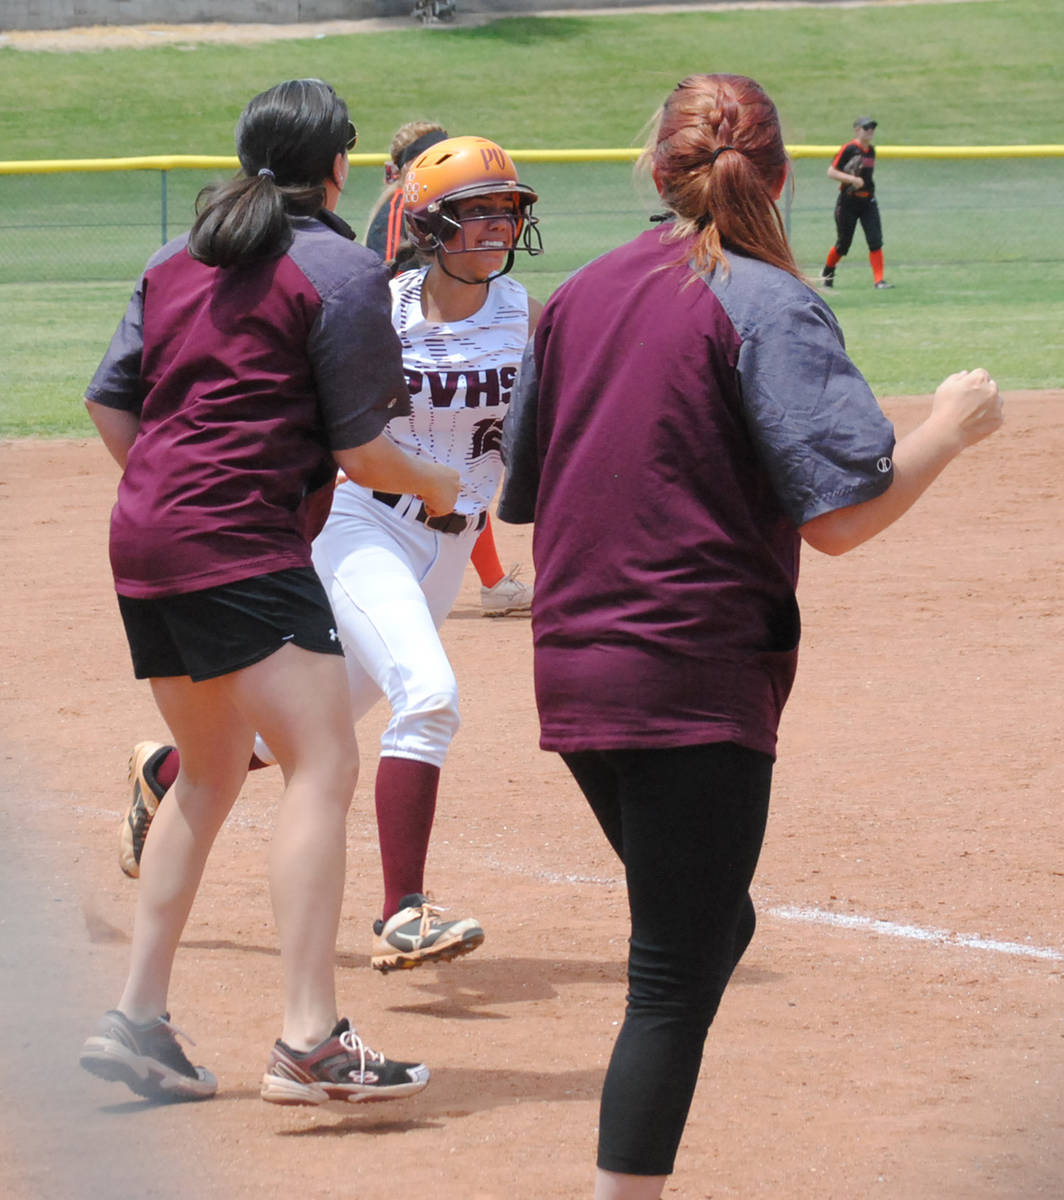 Cassondra Lauver/Special to the Pahrump Valley Times Kaden Cable rounds third base after hittin ...